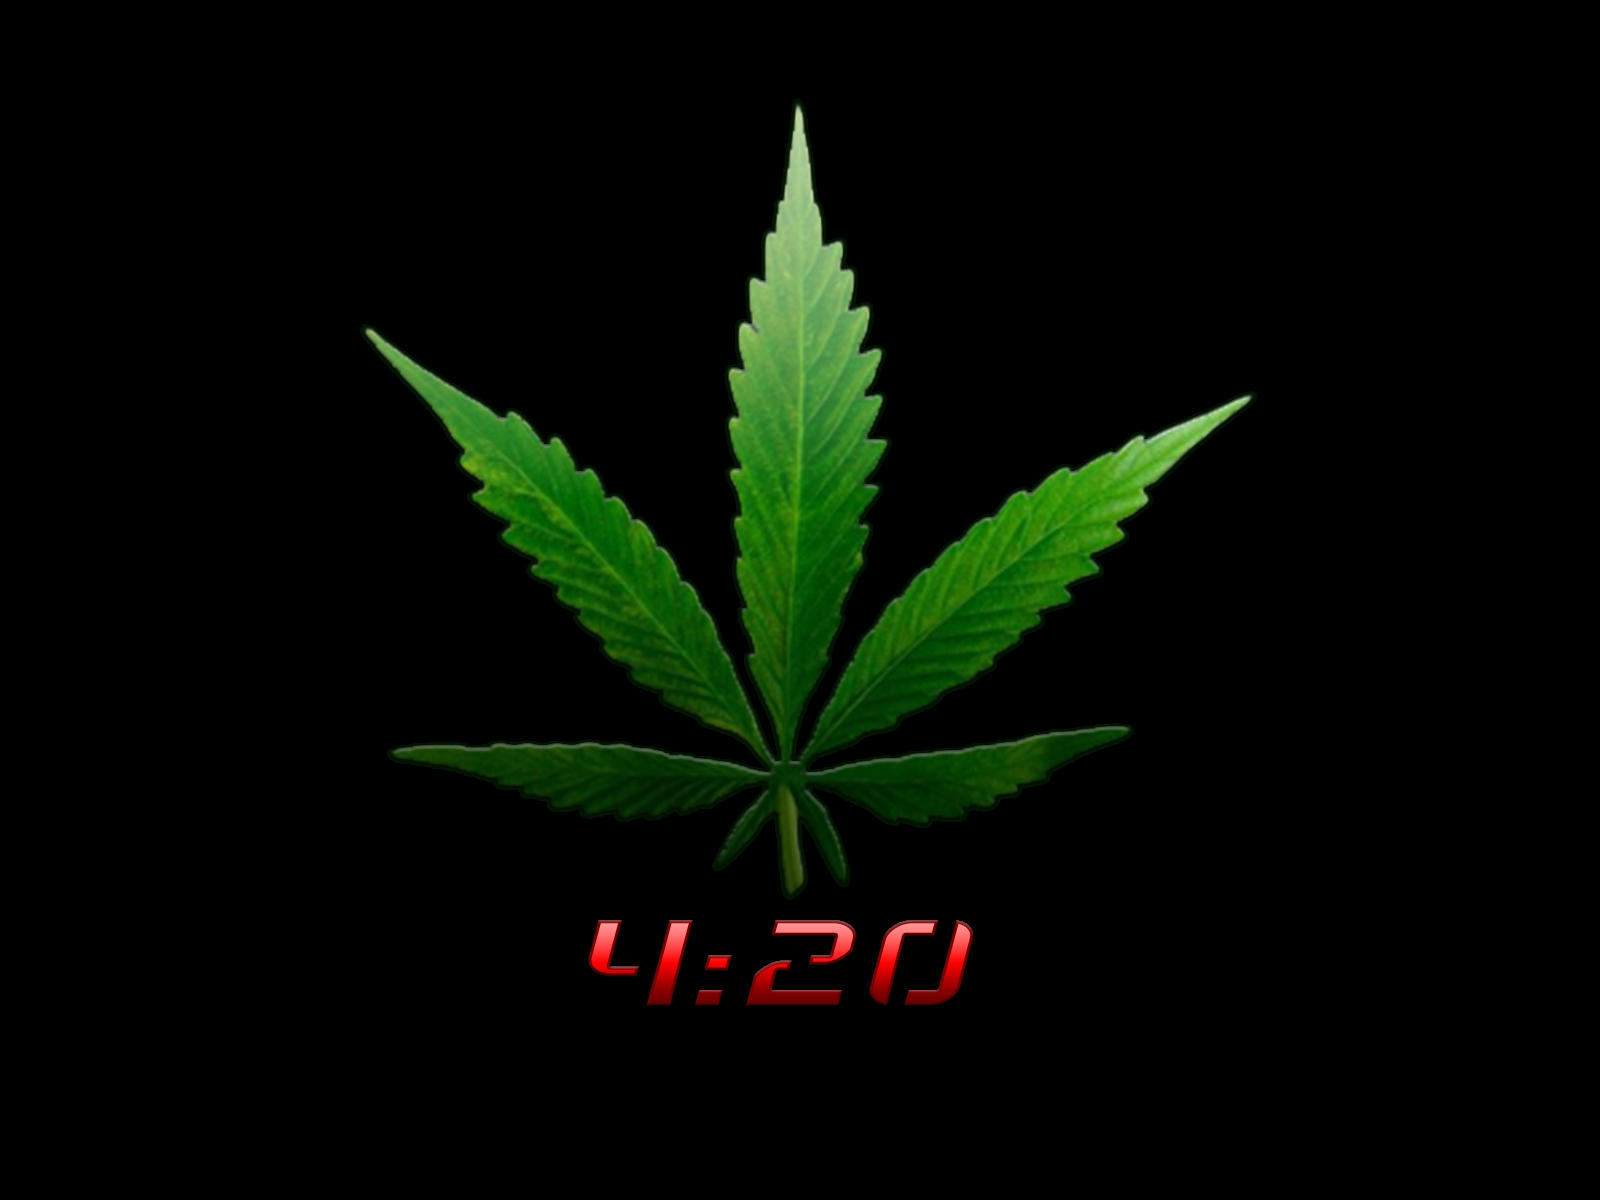 free 420 backgrounds 24 7 4 20